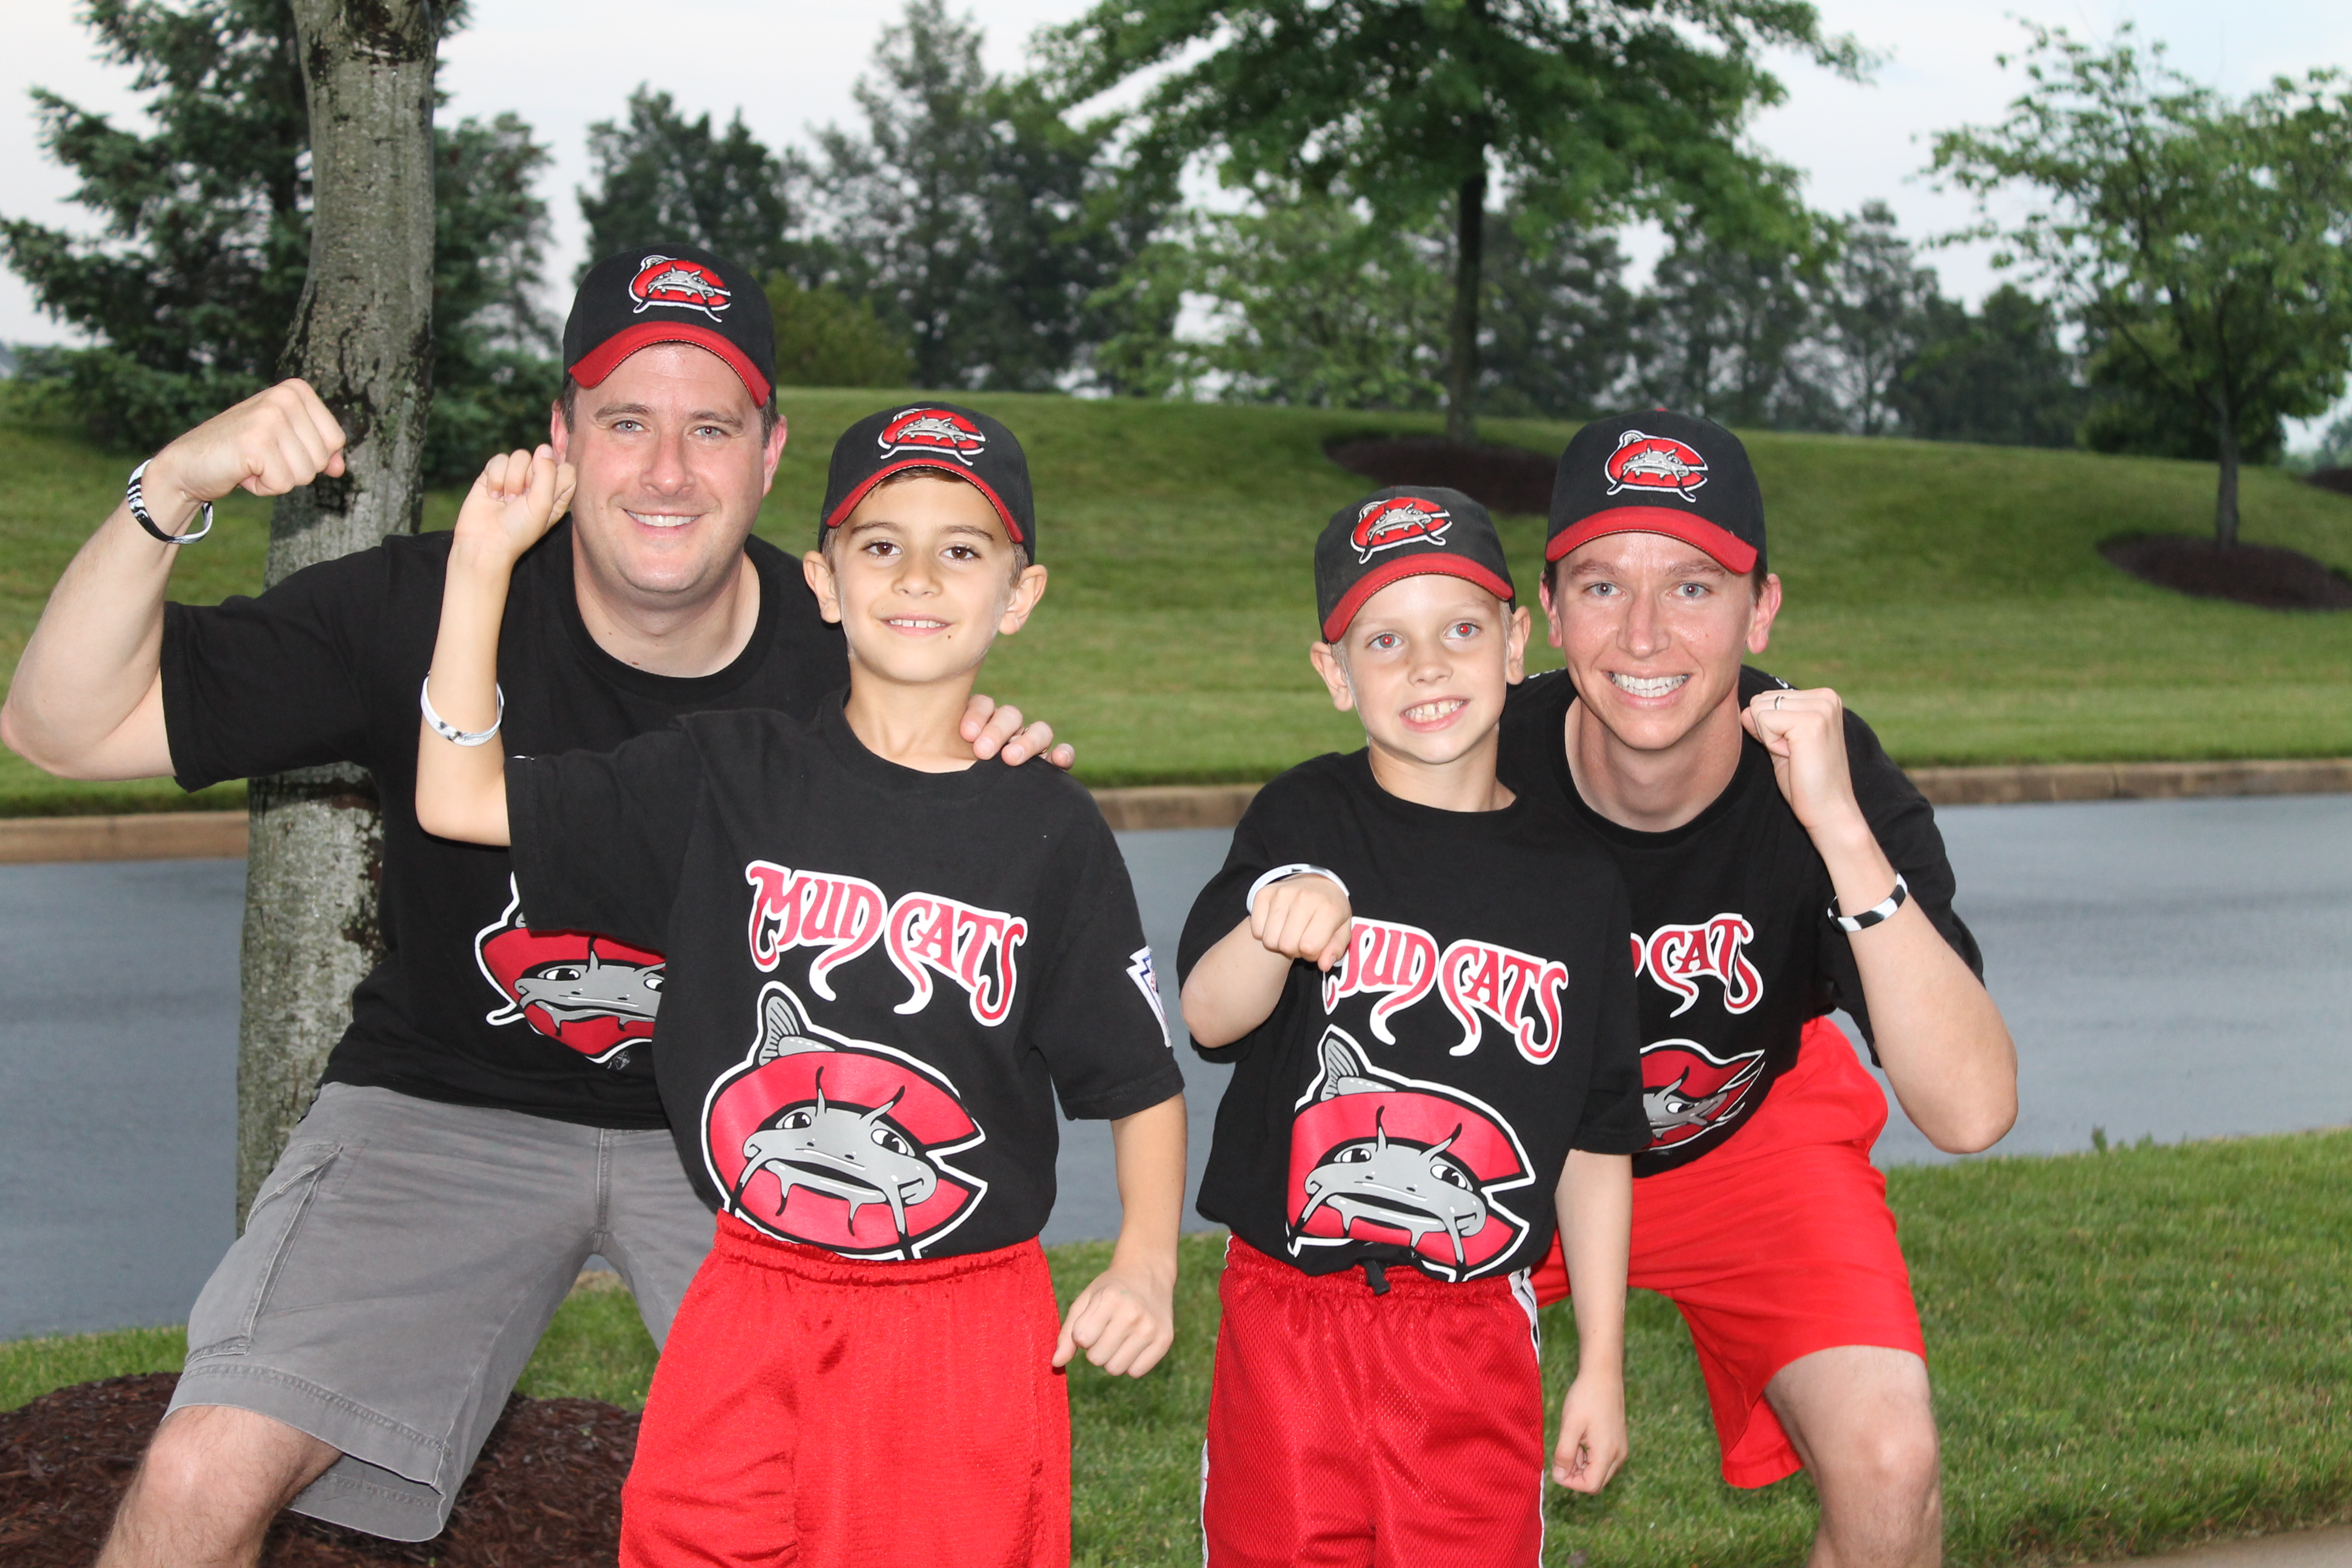 Mud Cats Little League baseball team raises awareness and funds for carcinoid cancer